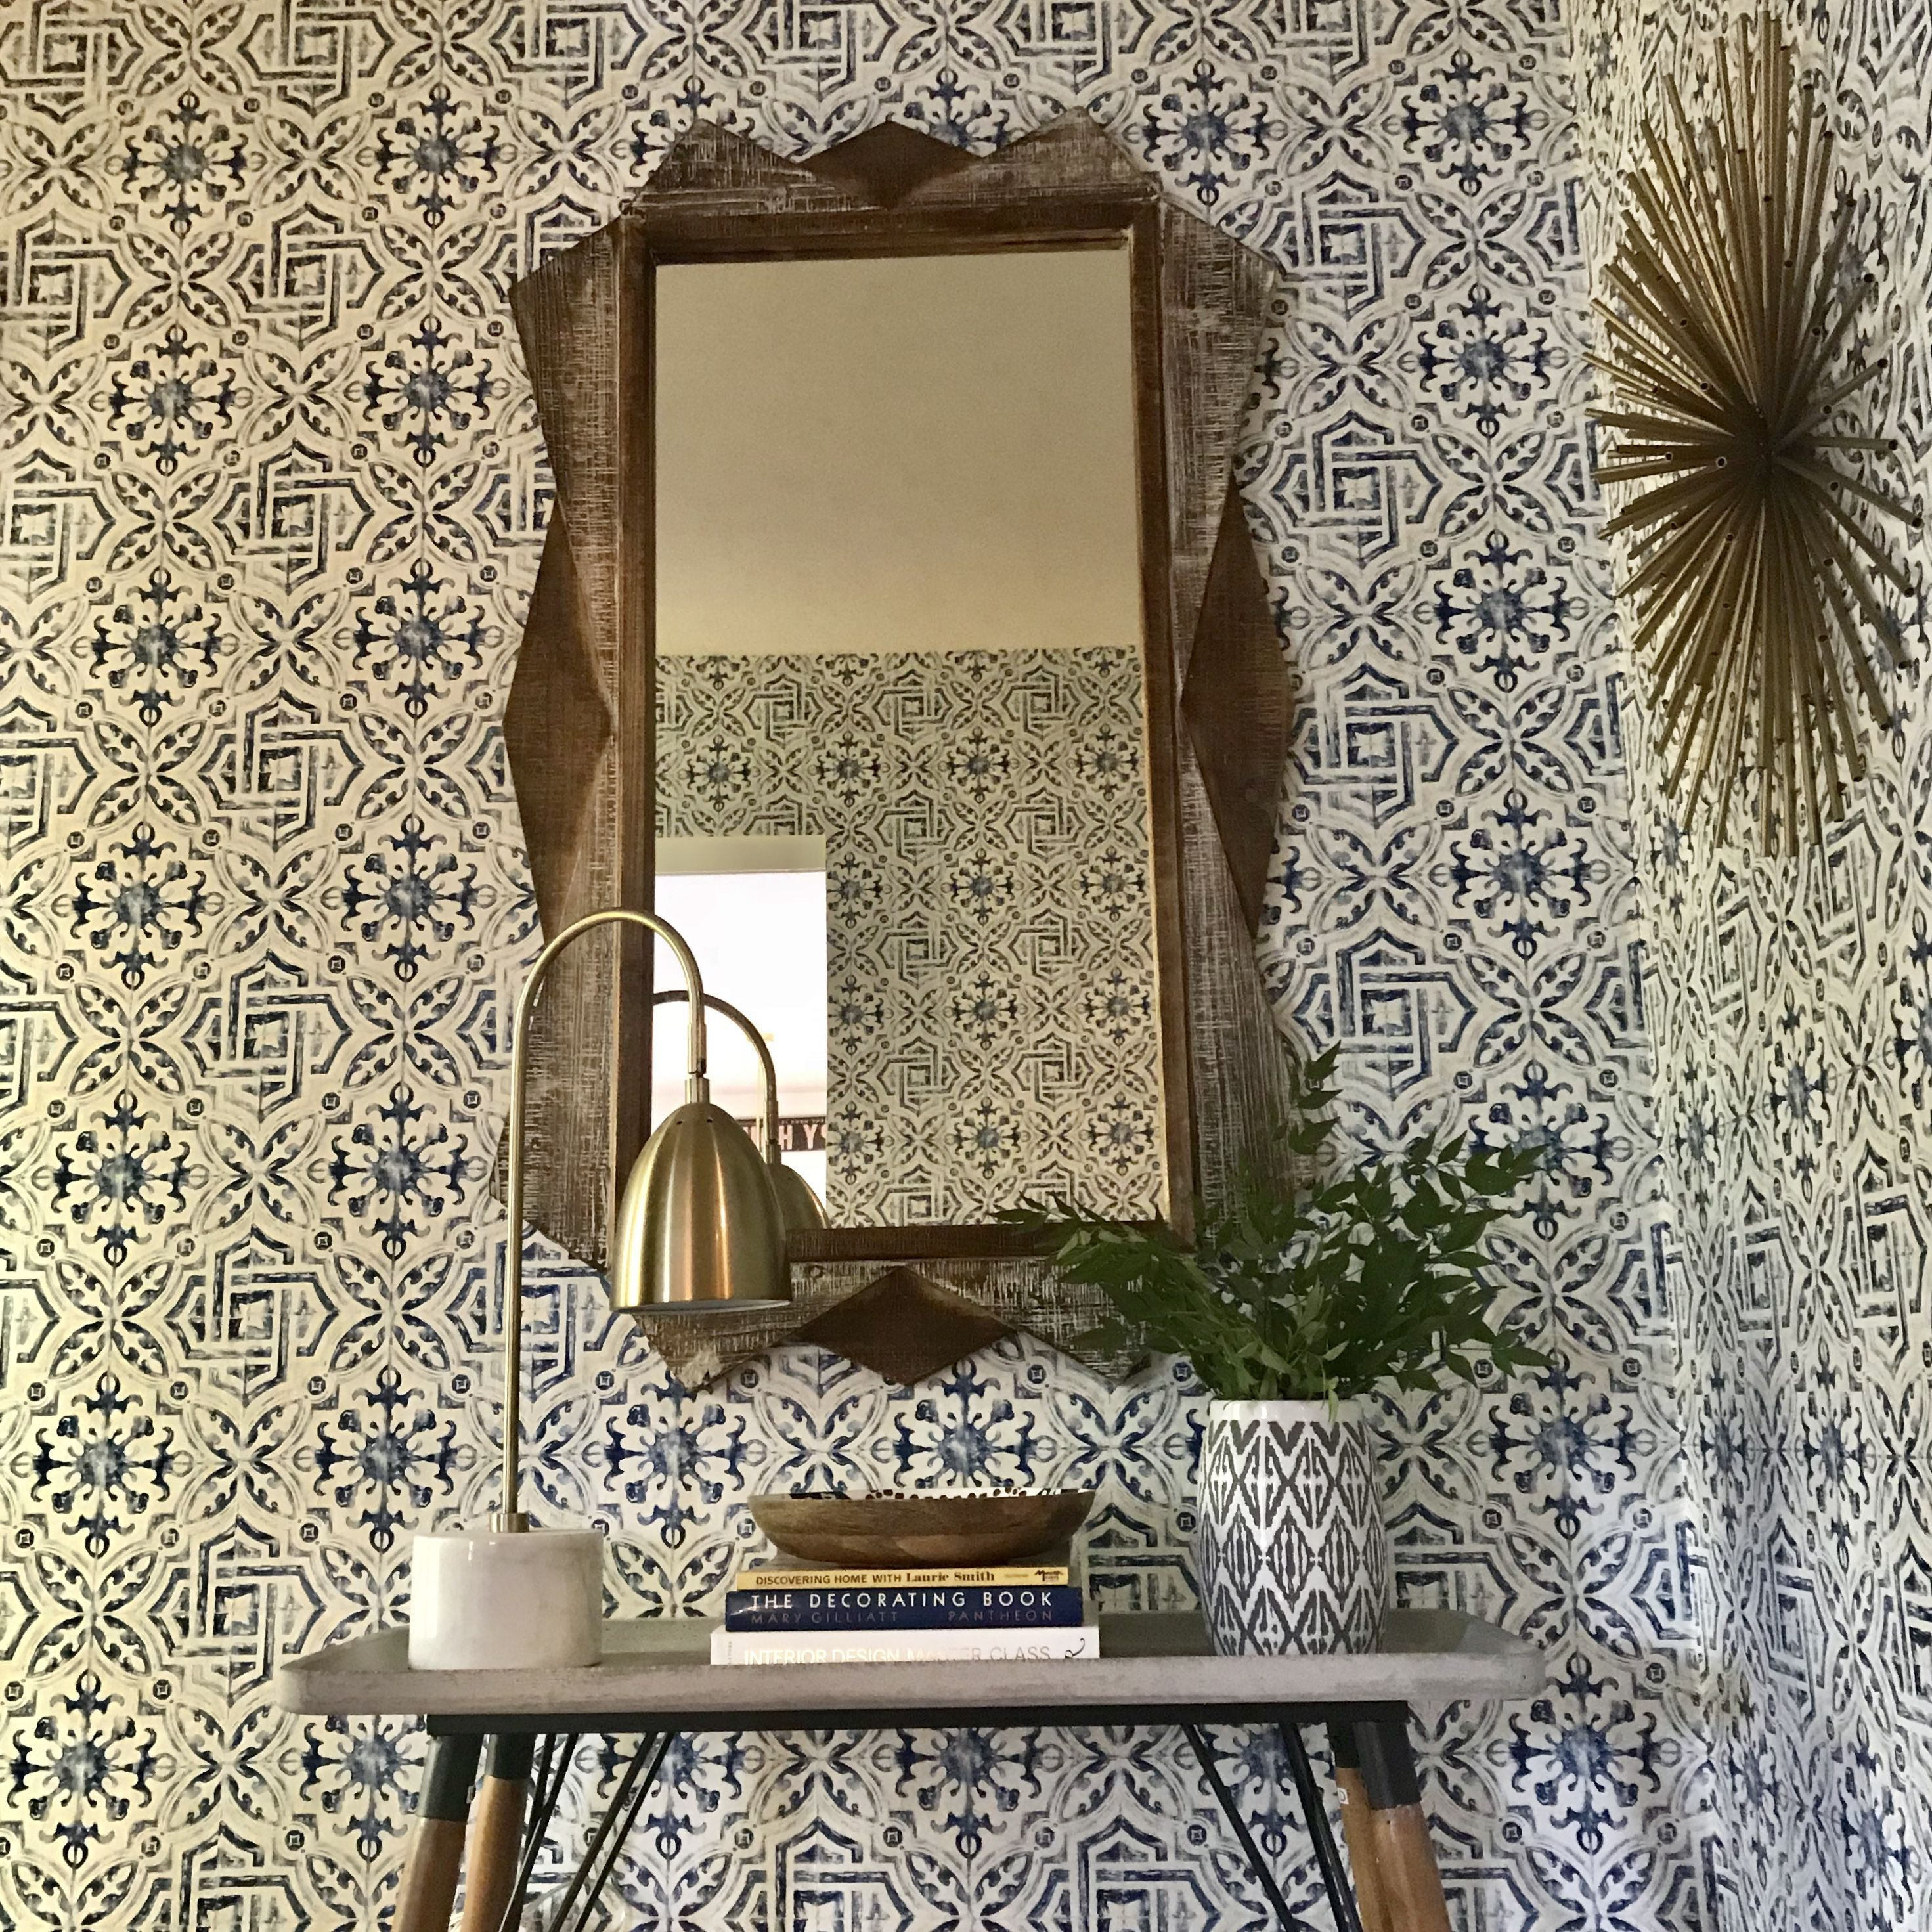 Wallpaper, Entryway Ideas, Foyer Ideas, Entryway Decor, Mirror In Entryway,